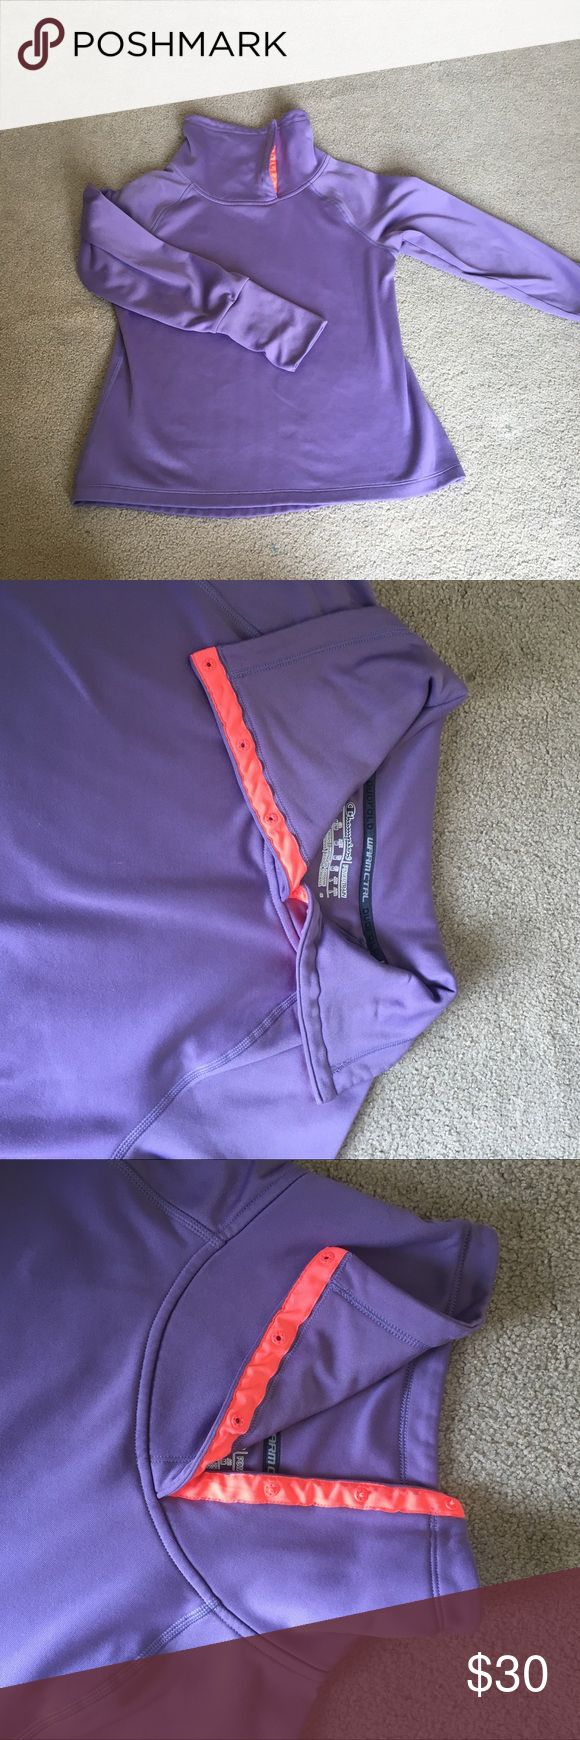 Champion workout pullover Beautiful light purple and neon orange/pink buttons and logo. Duo fold warm CTRL. Size medium. This can button up to a turtle neck or fold down. Good condition. Feel free to make an offer! Bundle and save! Champion Tops Sweatshirts & Hoodies